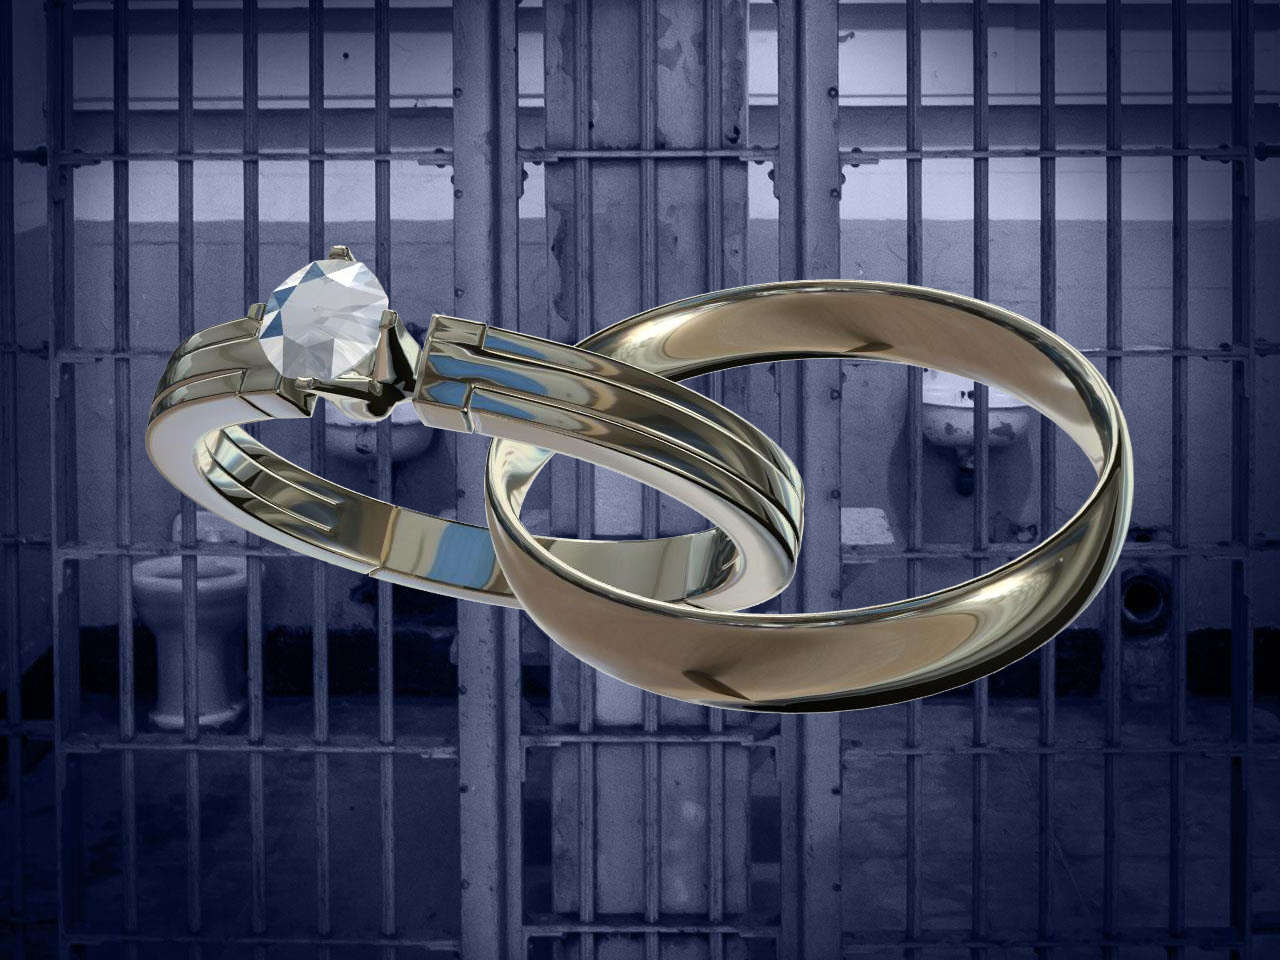 Court protects prisoner's right to marry